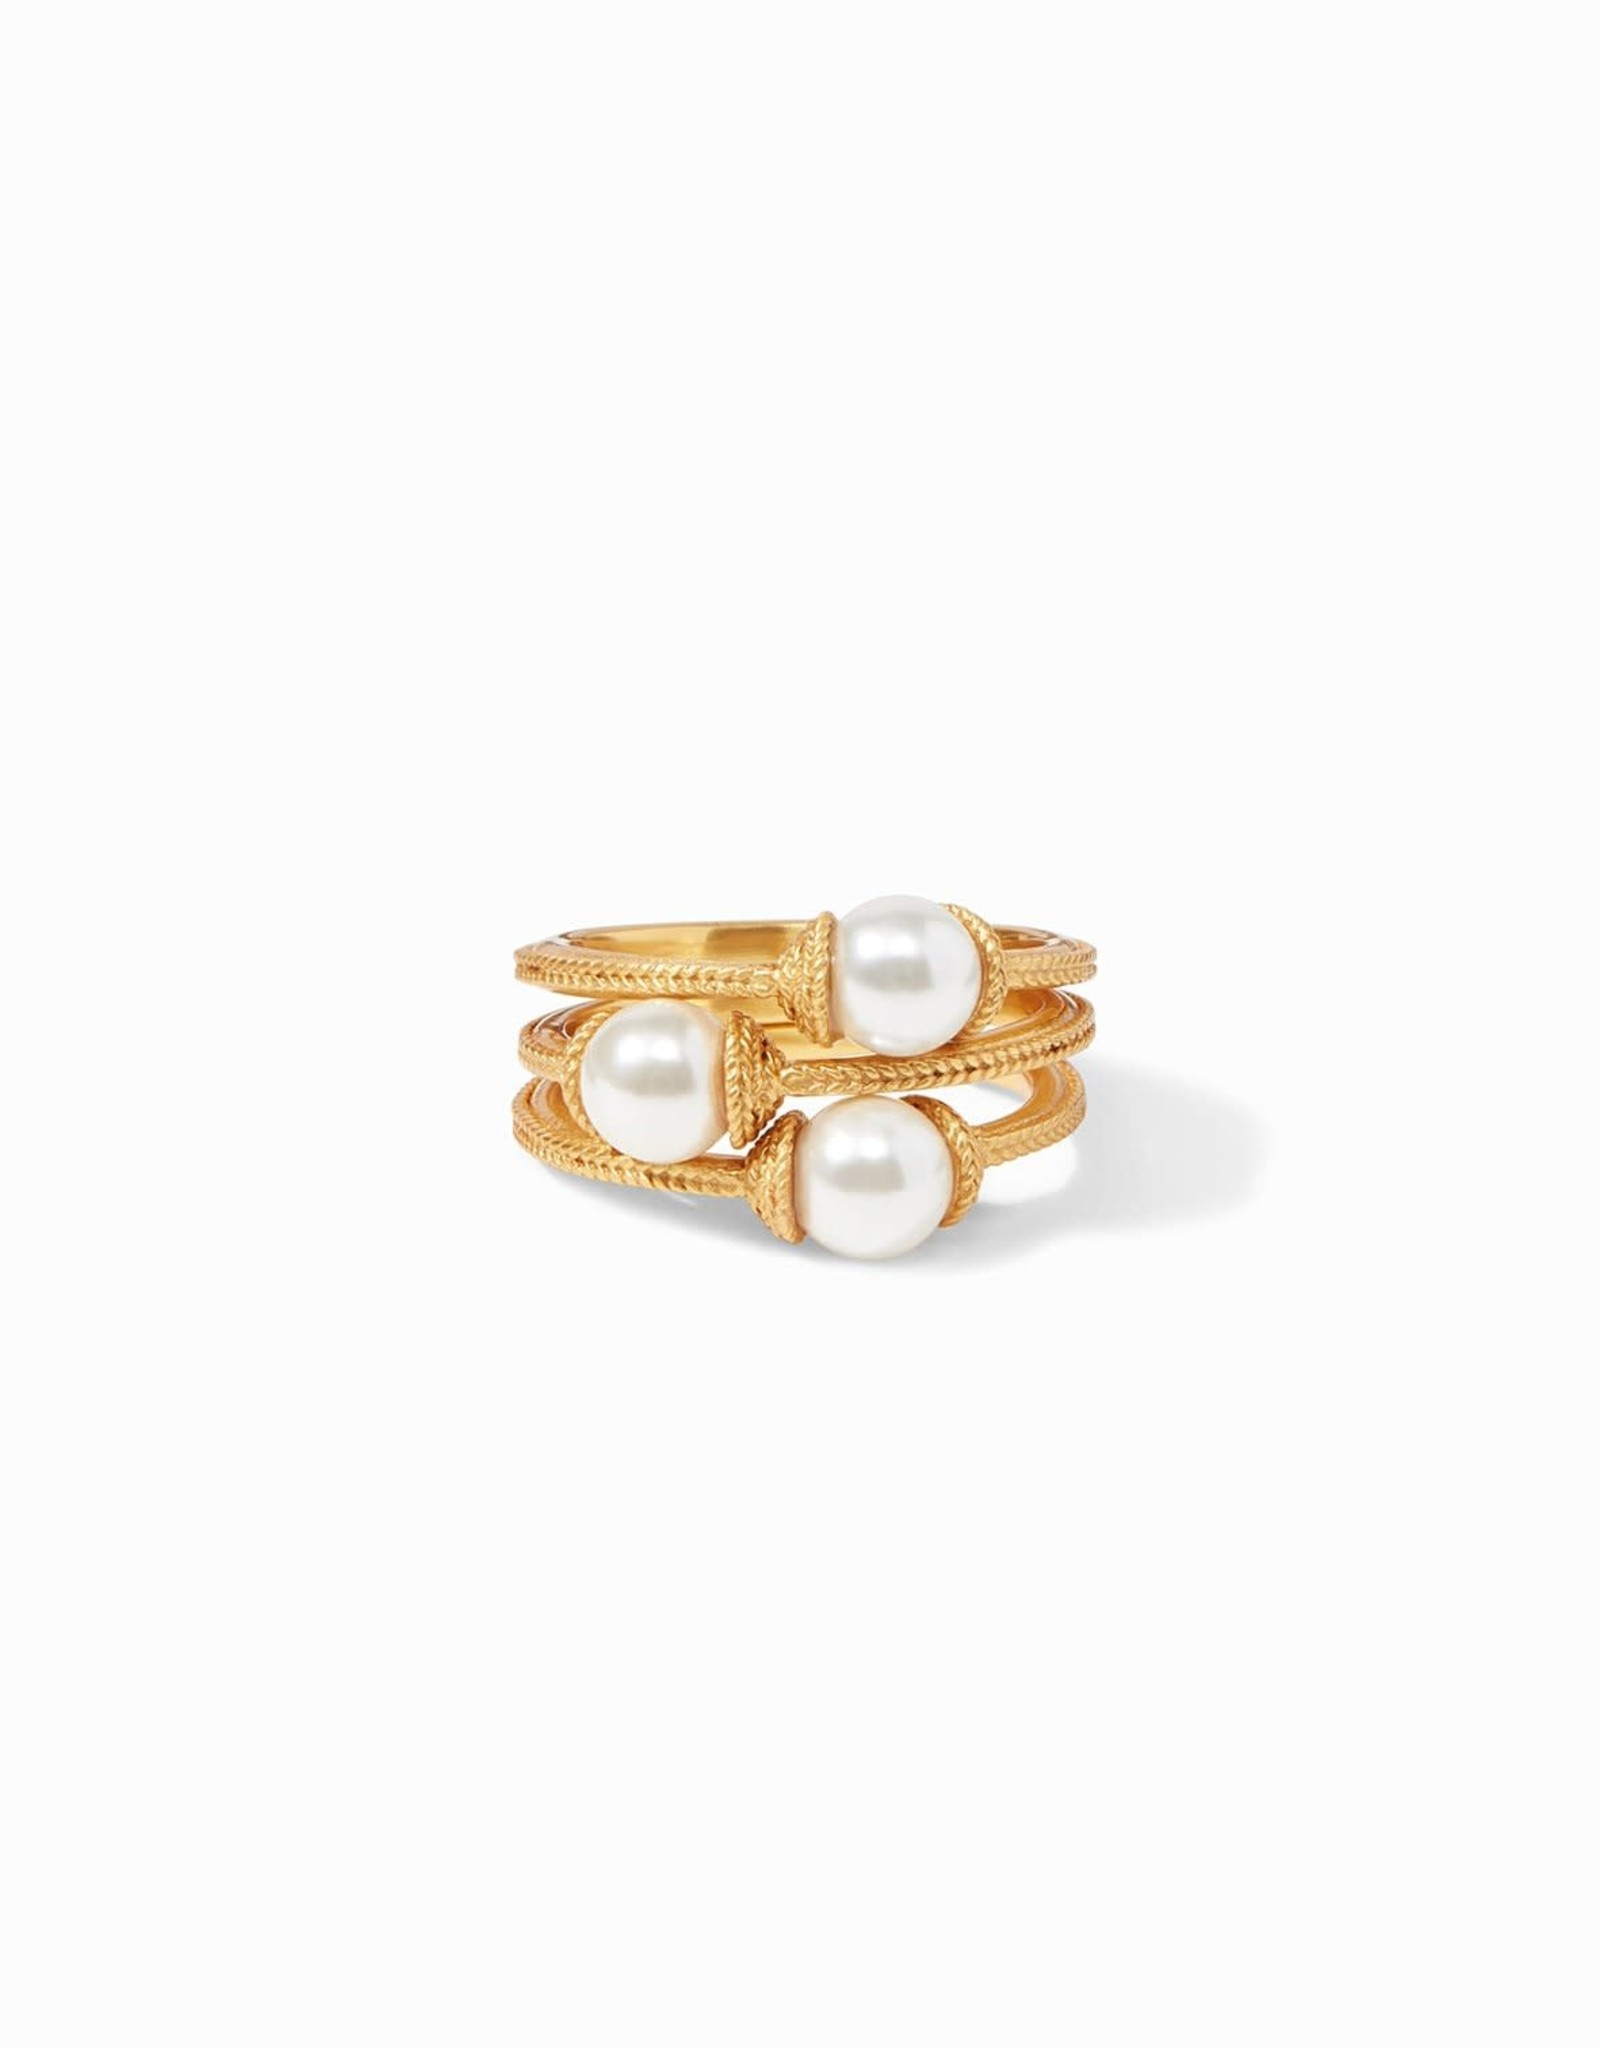 Julie Vos Calypso Pearl Stacking Ring (Set of 3) Gold - Size 7